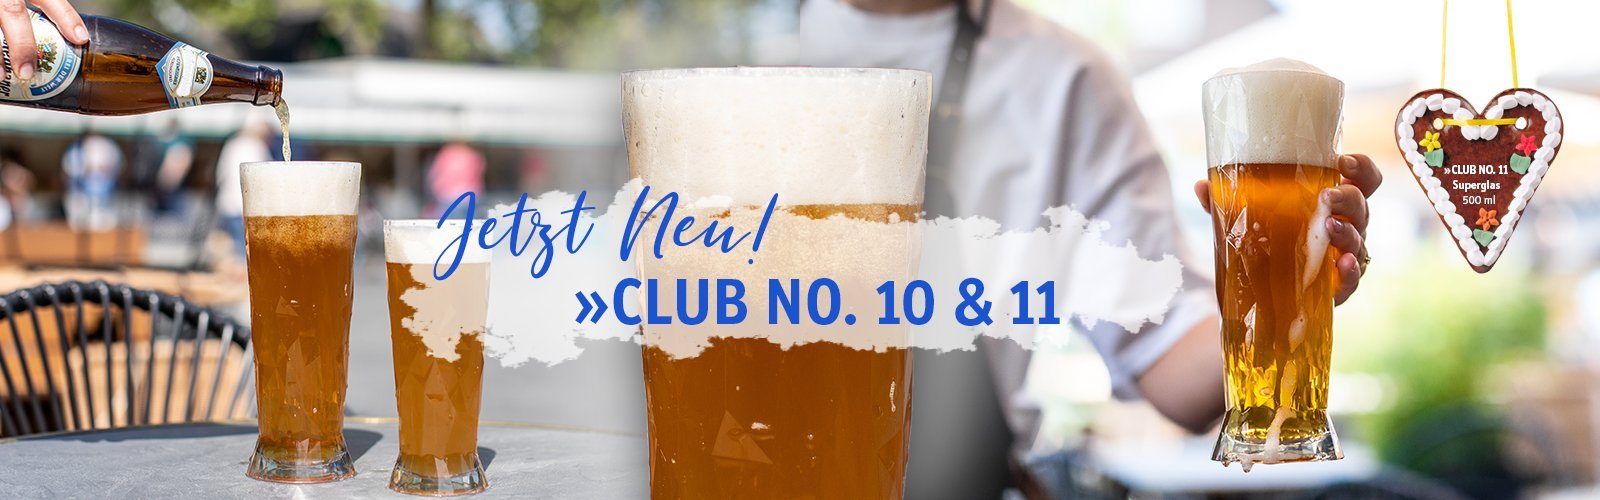 Bierglas CLUB NO. 10 & 11